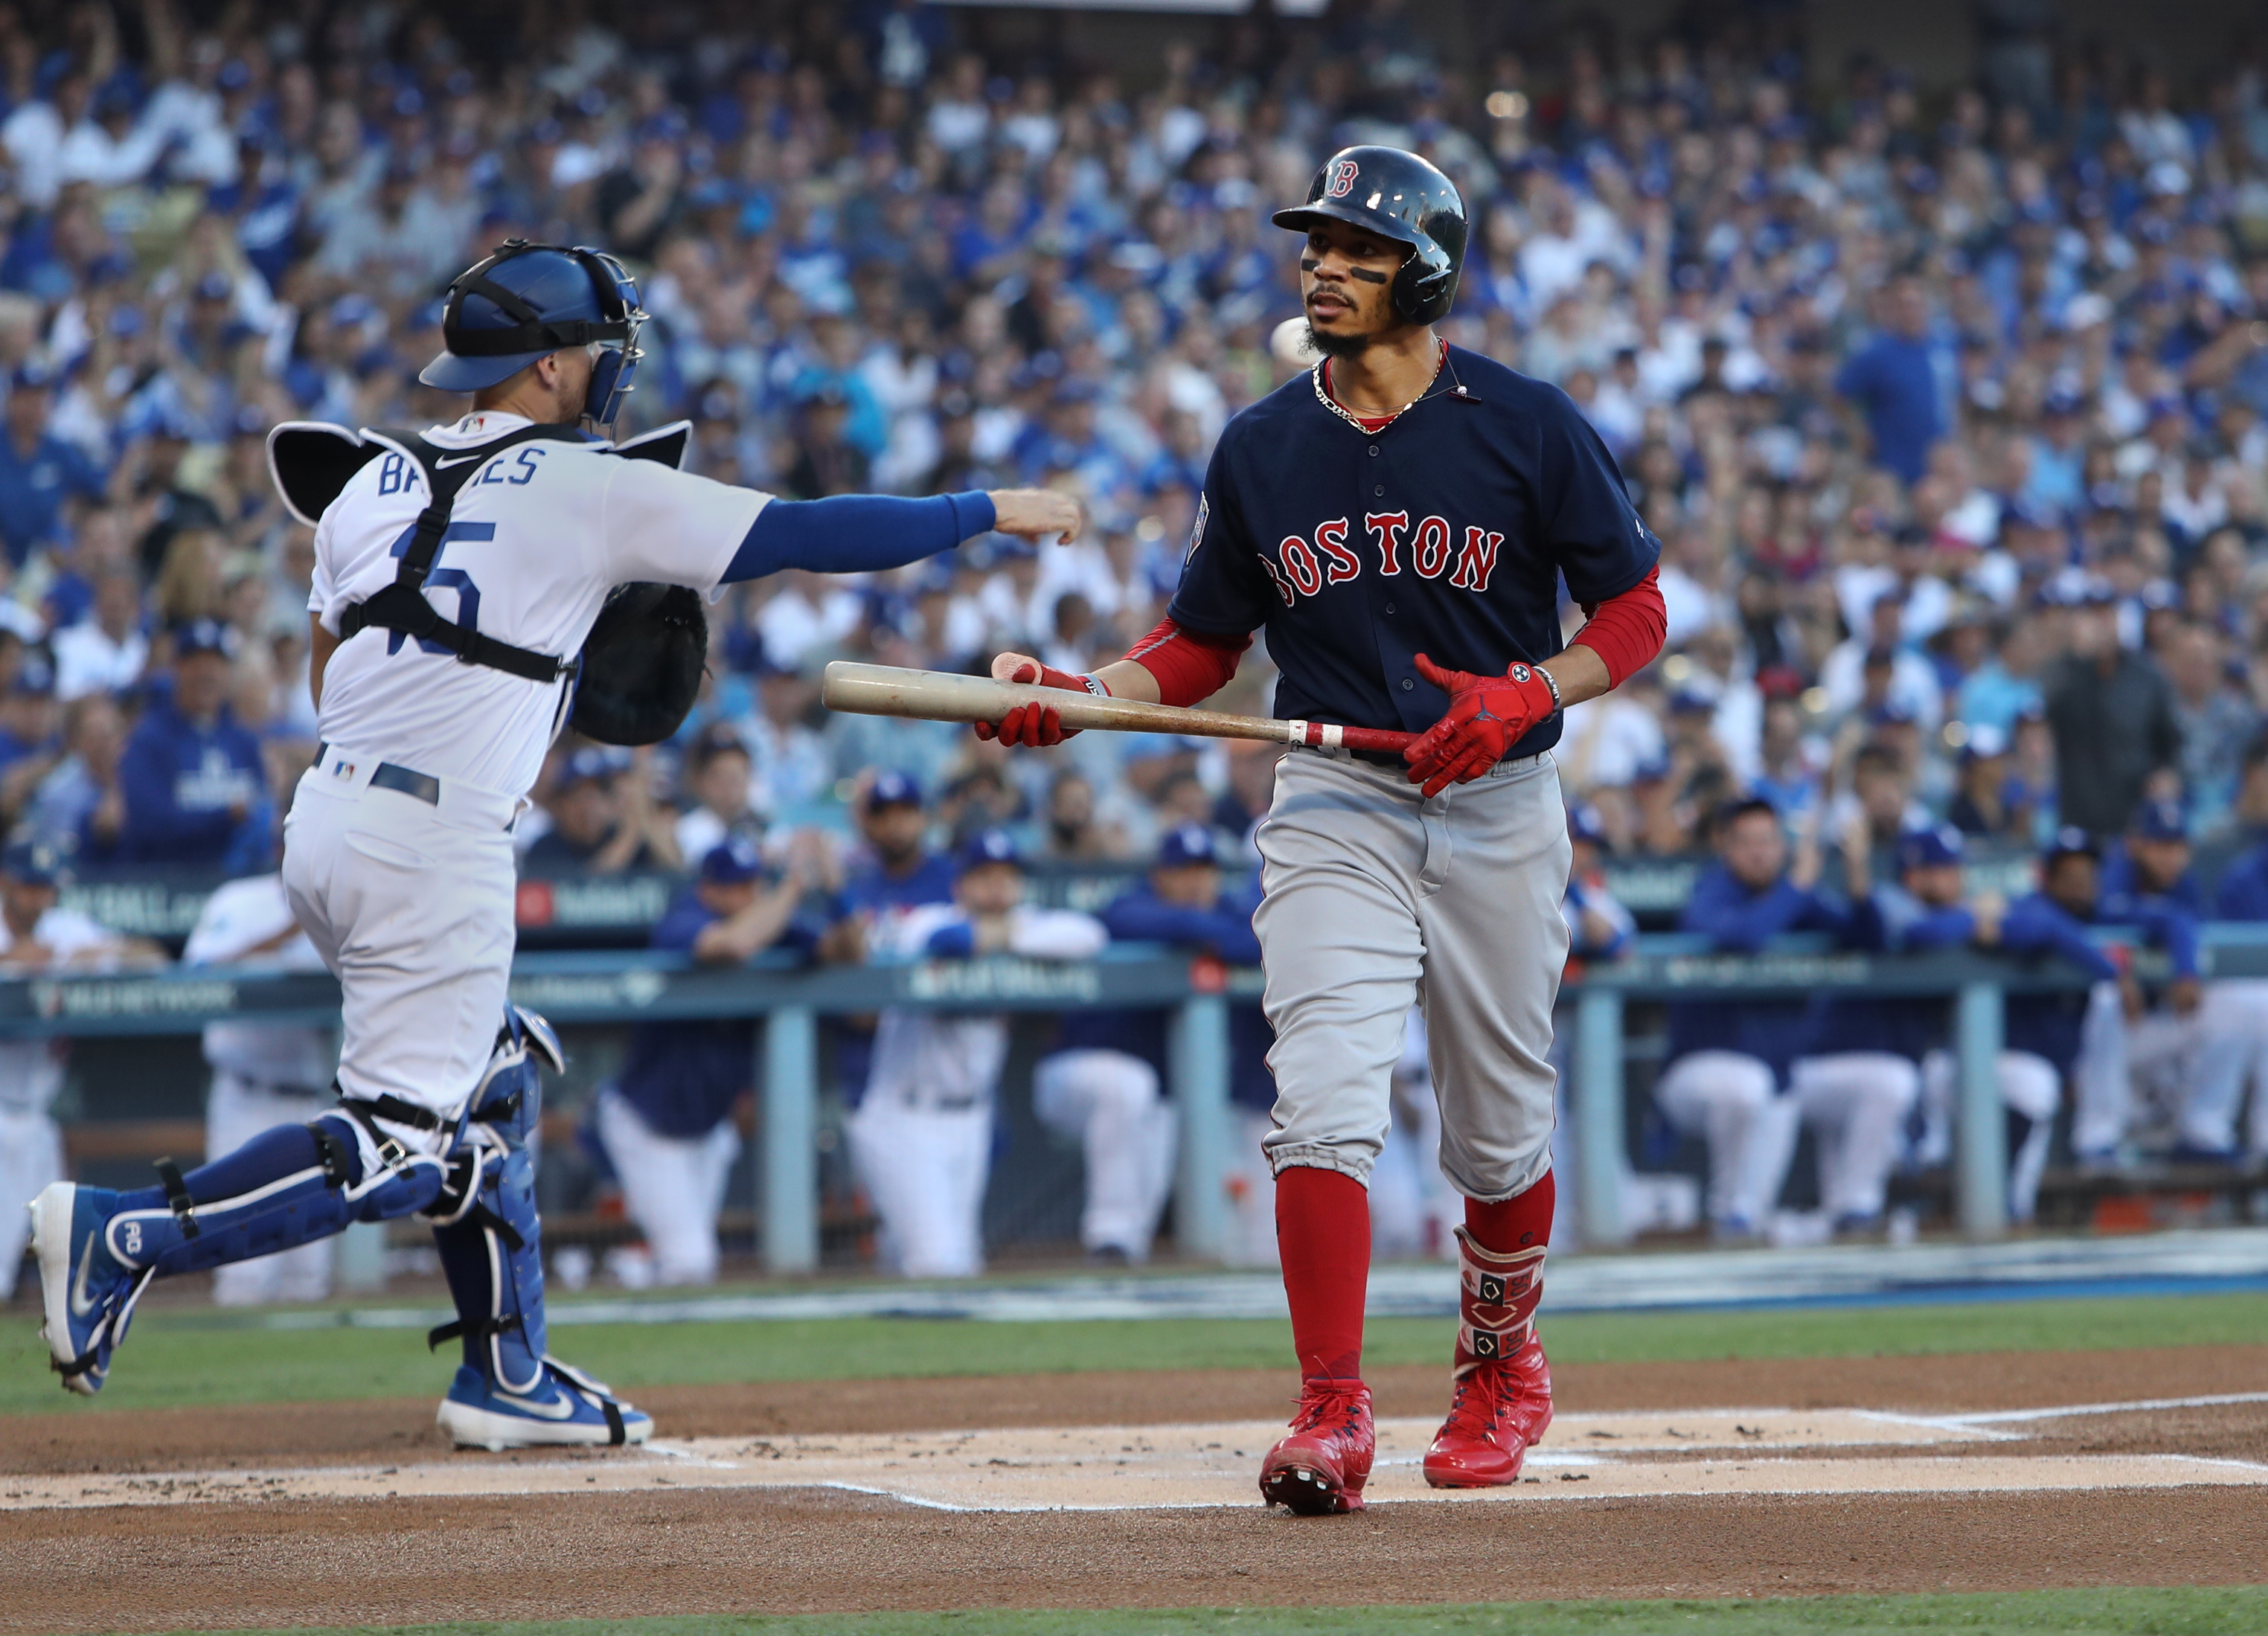 c0667d8a How the Red Sox came back to beat the Dodgers in Game 4, inning by ...